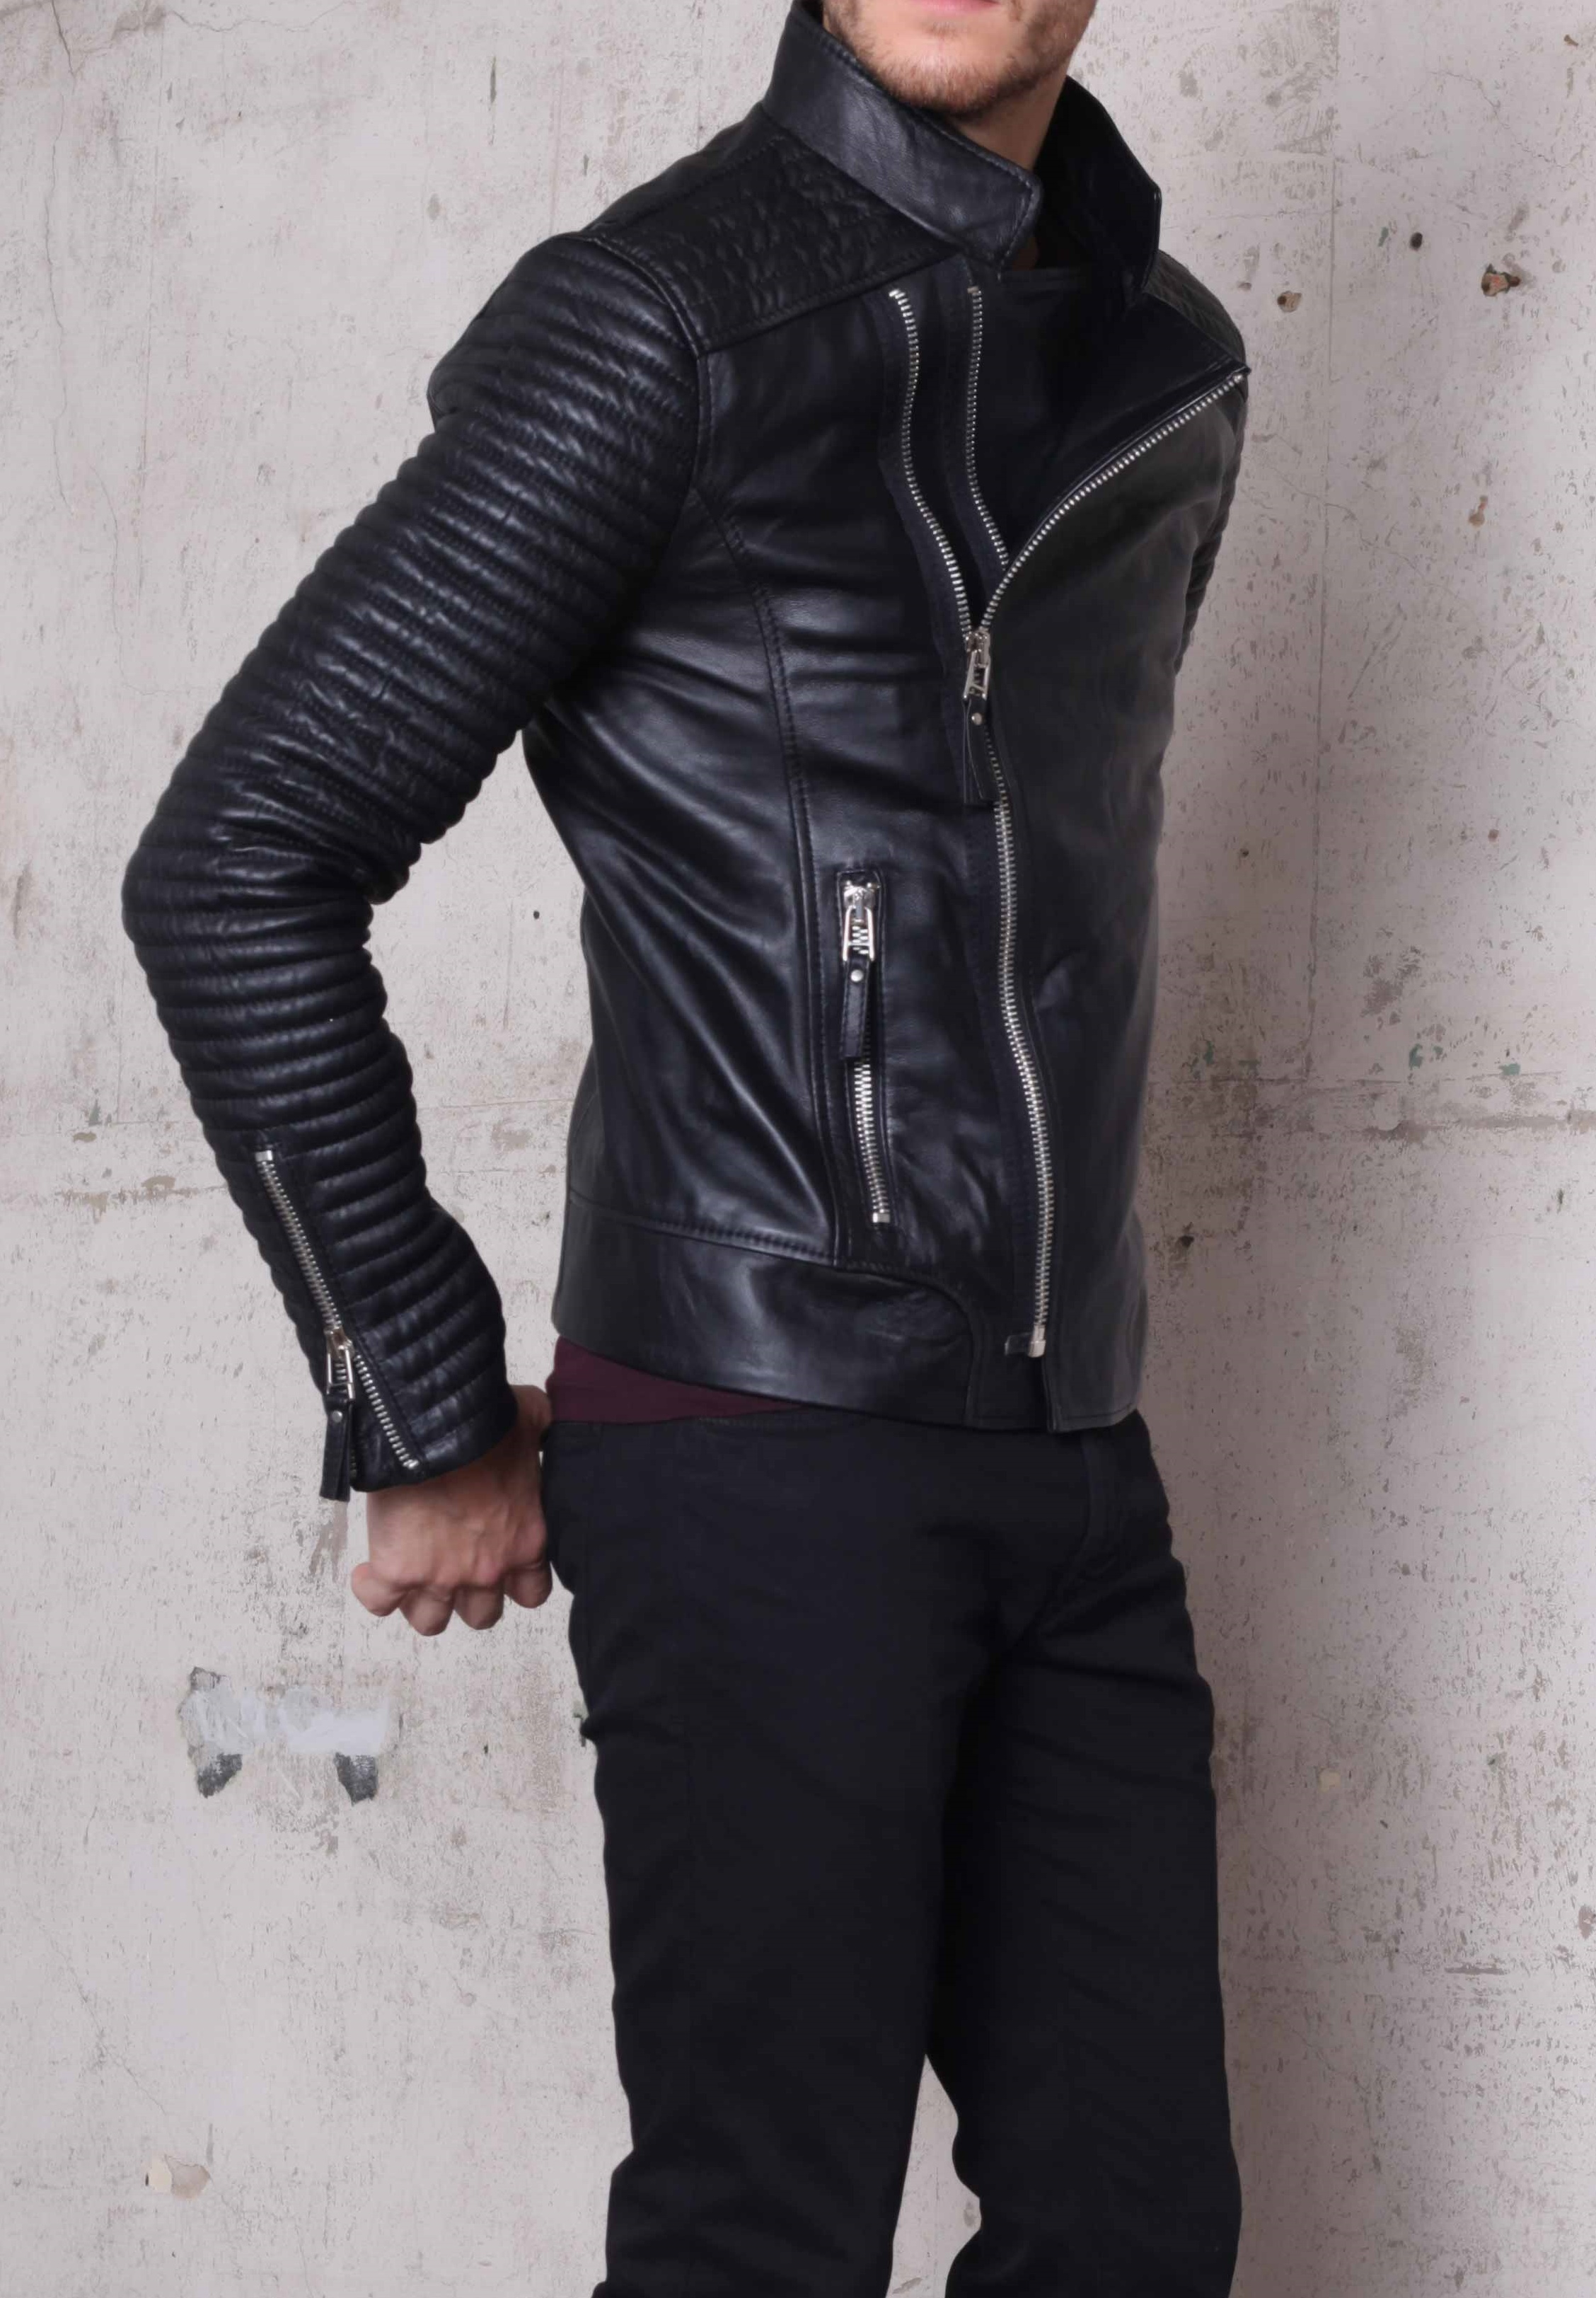 Handmade Mens Biker Leather Jacket, Men Fashion Rider Black ...